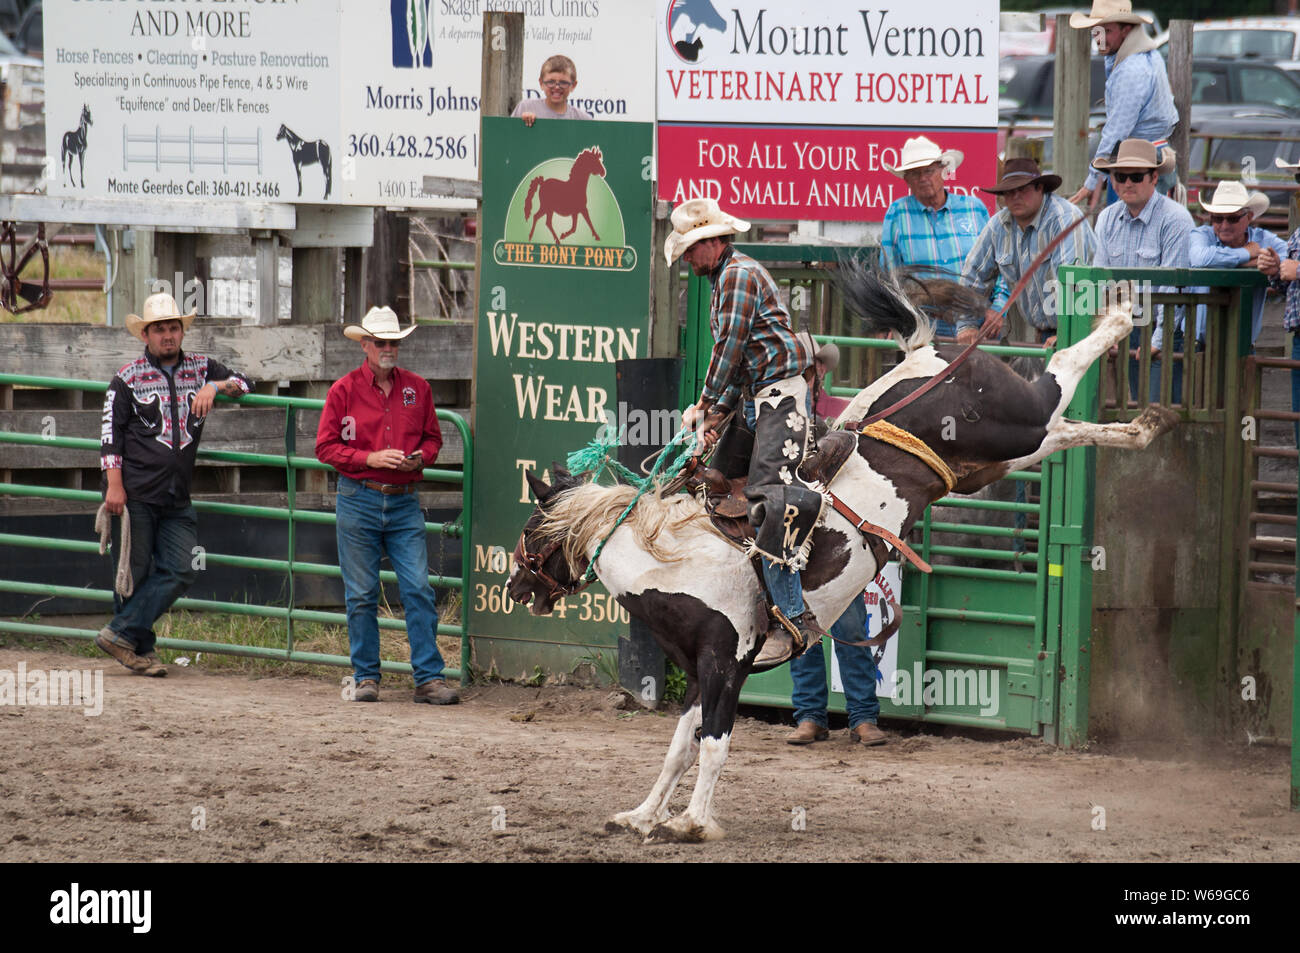 This Cowboy Riding A Bucking Horse At The Annual 4th Of July Loggerodeo In Sedro Woolley Wa One Of The Longest Running Rodeos In The State Stock Photo Alamy